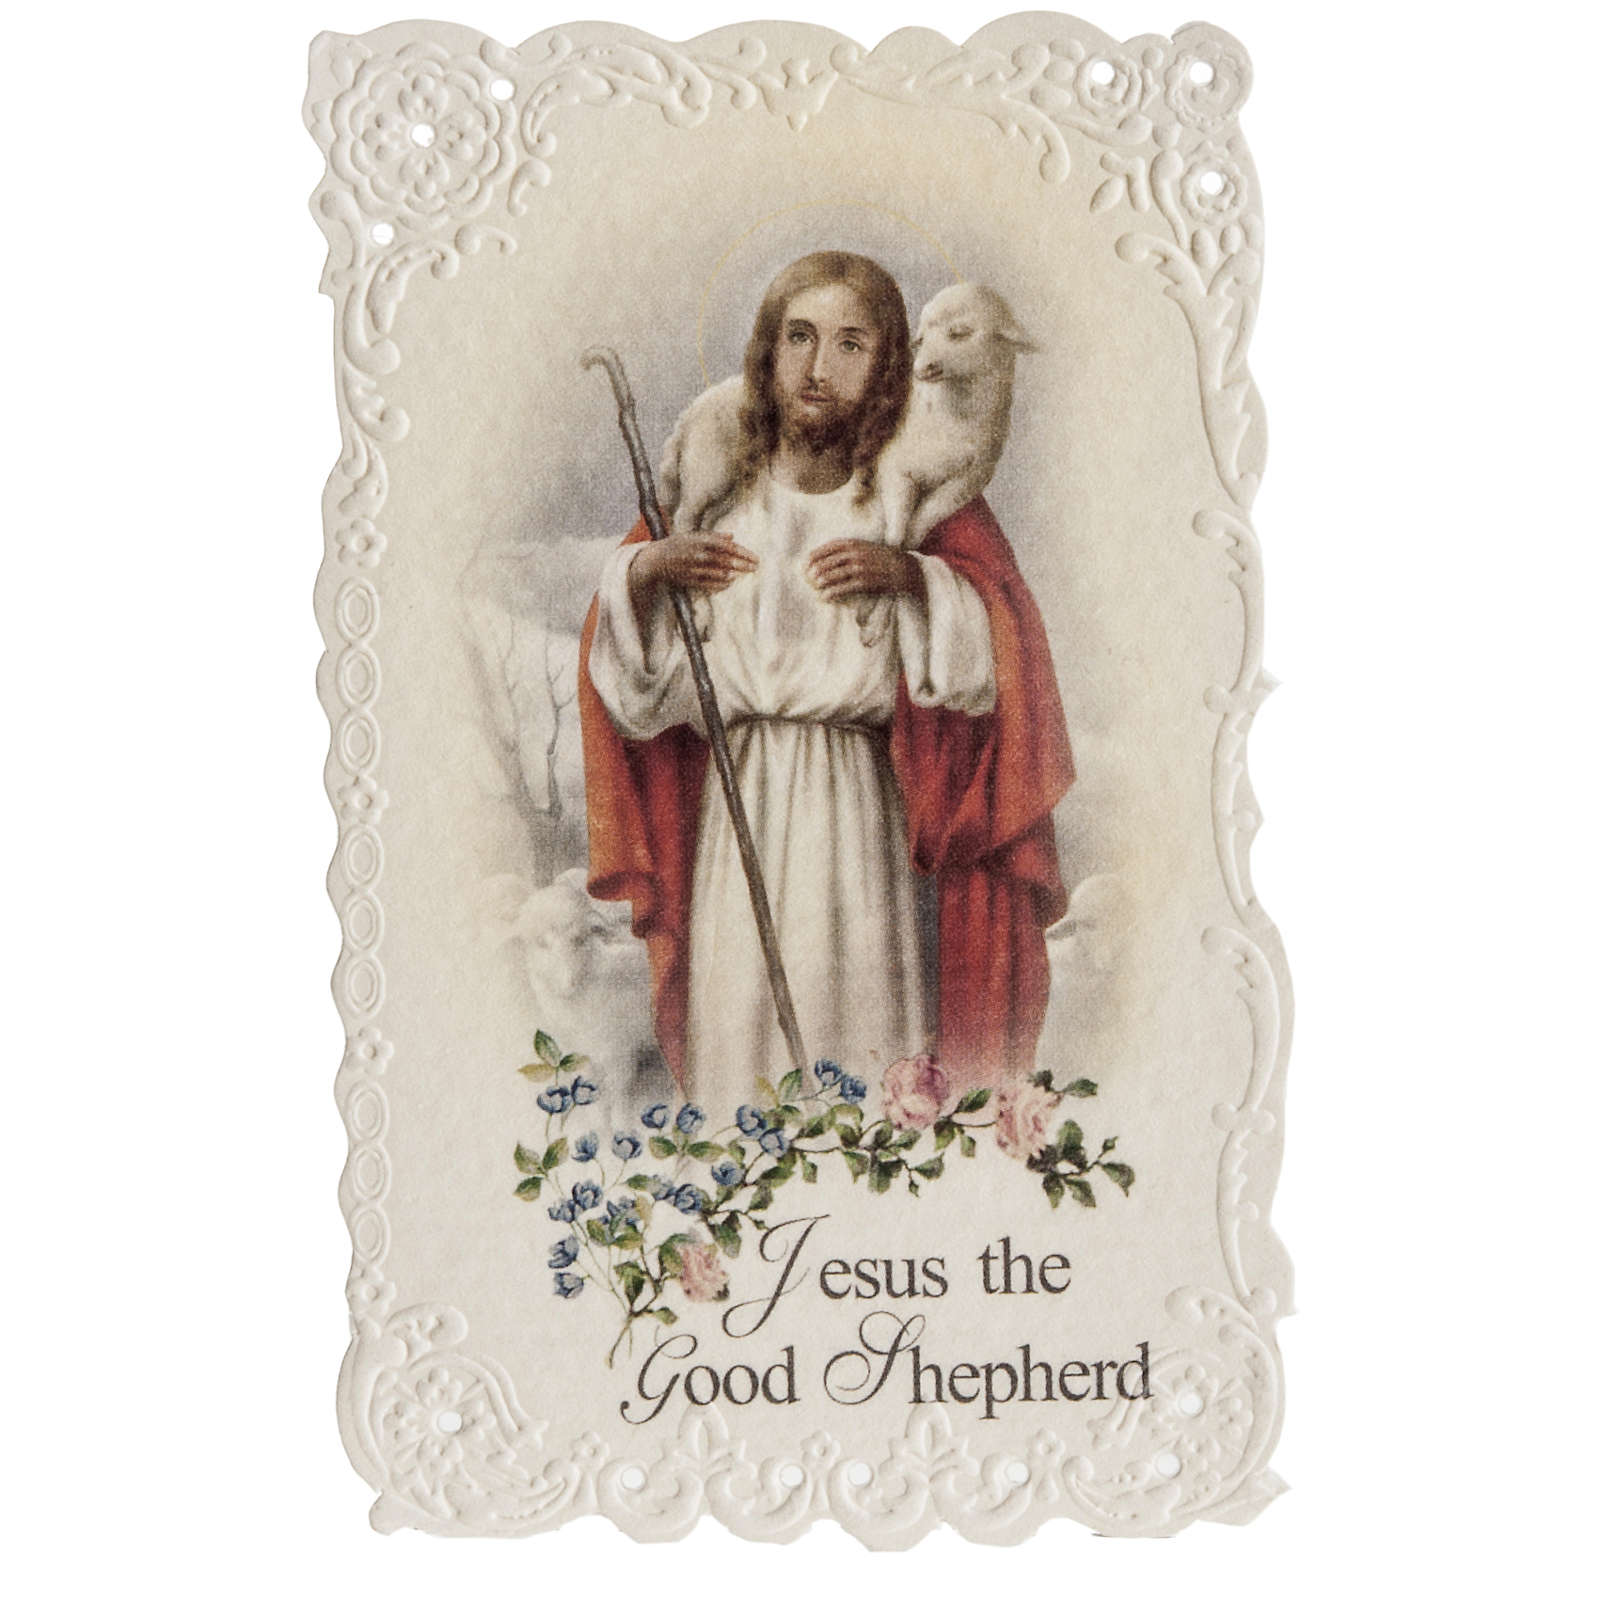 Santino Jesus the good shepherd (inglese) 4